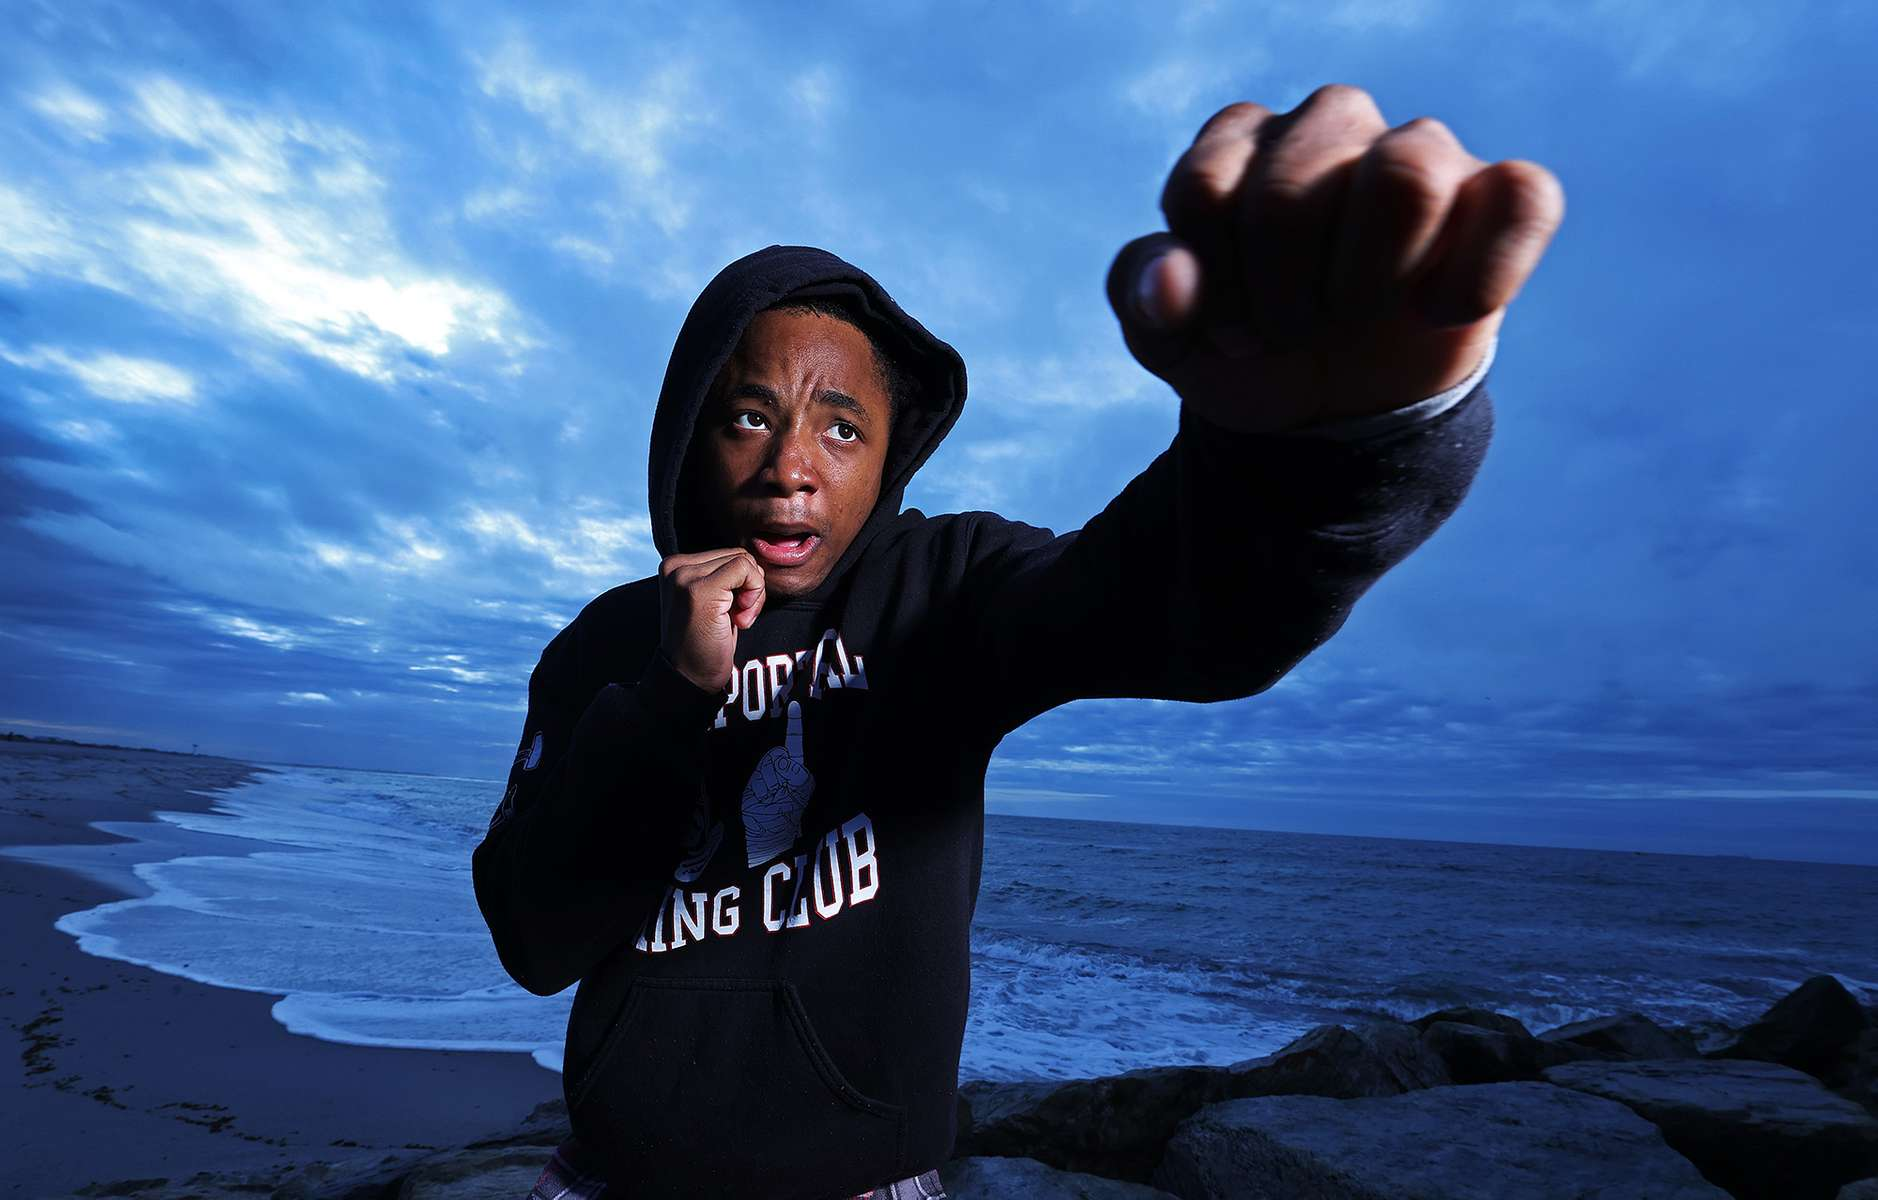 Alan Teemer Jr. shadowboxes on the beach on May 18, 2020 in Long Beach, New York.  Alan is an Amateur boxer who fought in the New York City Golden Gloves and made the Semi Finals in the Open 123lb class. He was training to compete in this year's Golden Gloves tournament but it has been cancelled due to the coronavirus pandemic.  The Gym he fights for is called the Freeport Boxing Club and has been closed by New York Governor Andrew Cuomo since March 16th due to the coronavirus COVID-19 pandemic.  Until the gyms are deemed safe to open he will continue to stay fit by training at home with the hope that he can box again later this year. (Photo by Al Bello/Getty Images) (Photo by Al Bello/Getty Images)